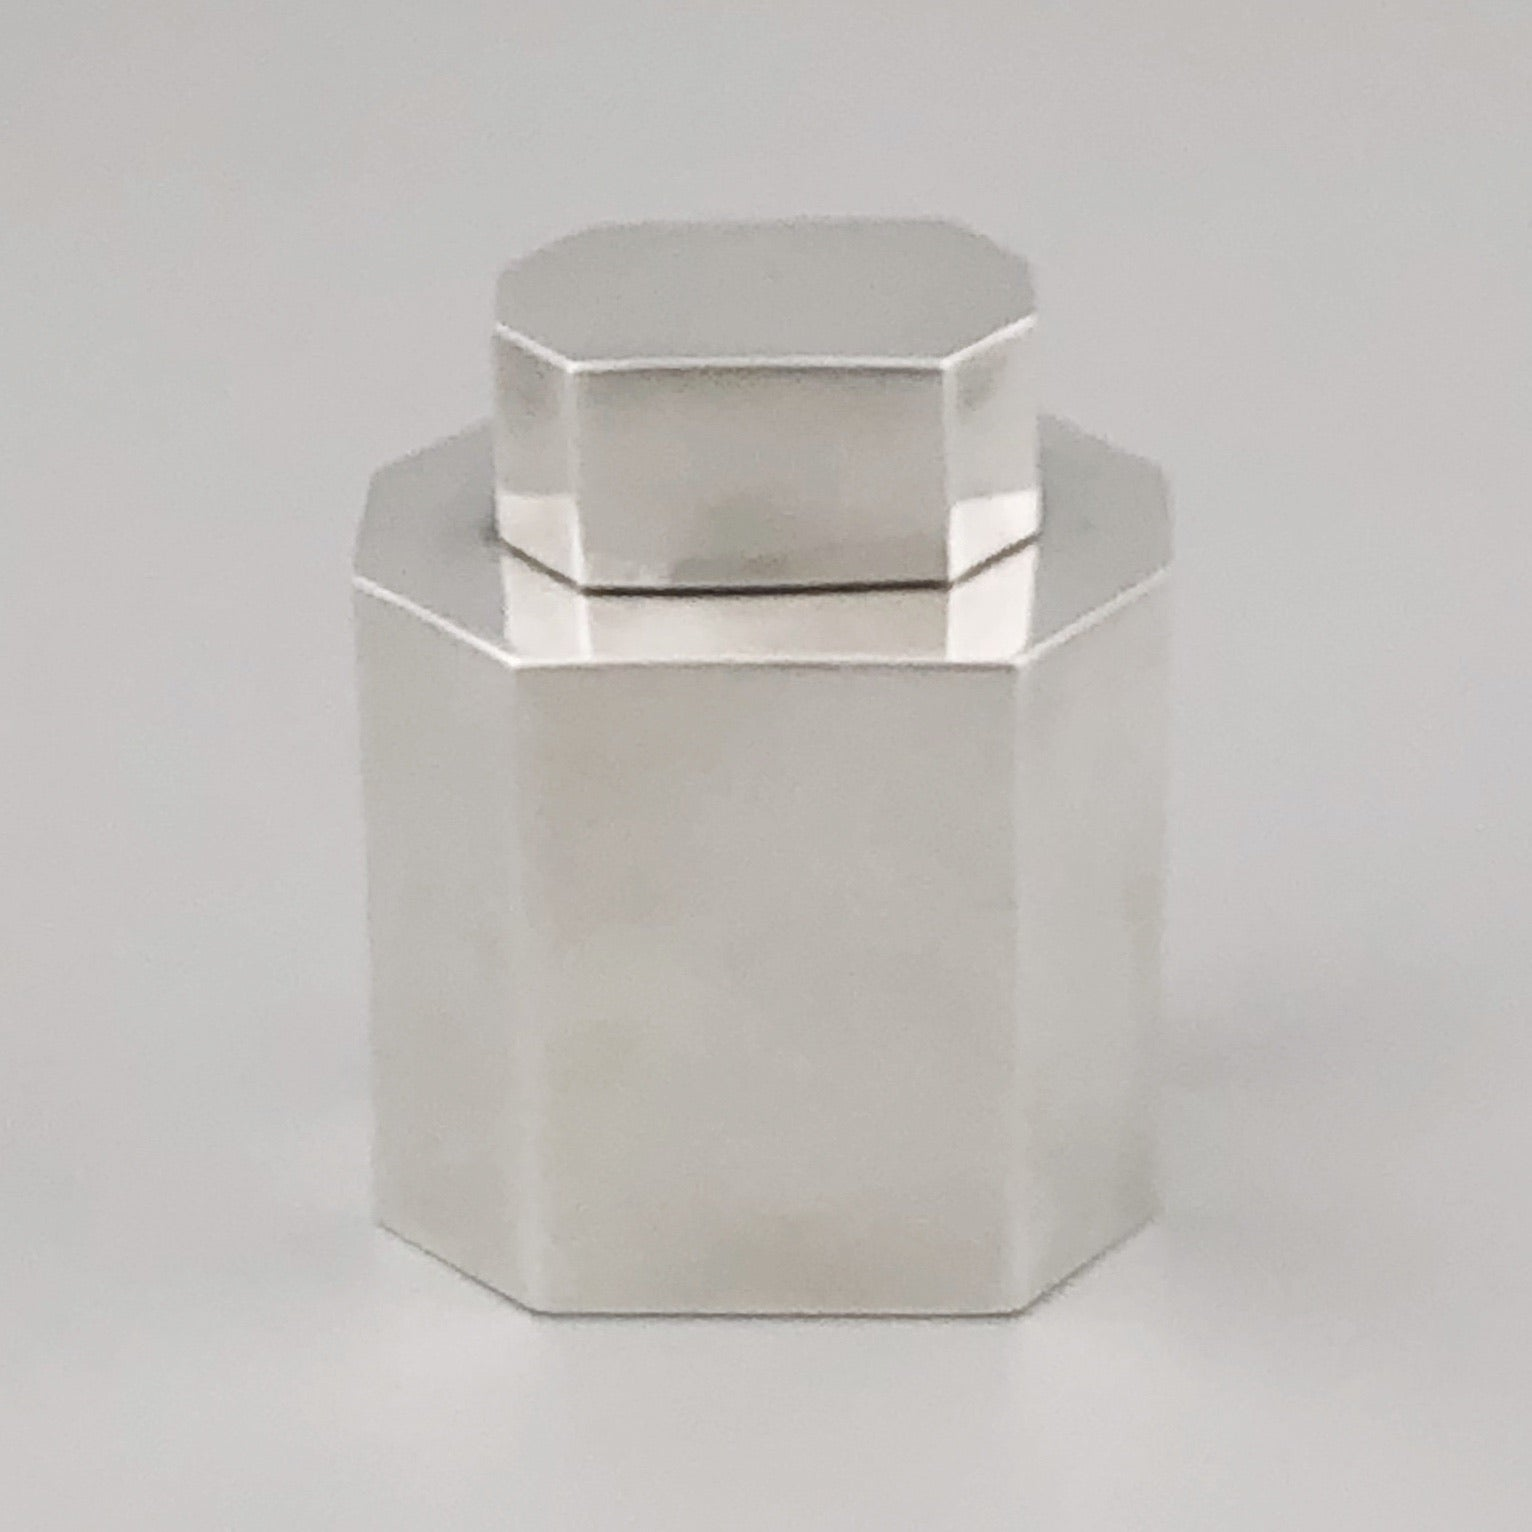 Sterling Silver Tea Canister / Caddy with Paneled Body, Gorham Manufacturing Company, Providence, RI, 20th Century - The Silver Vault of Charleston